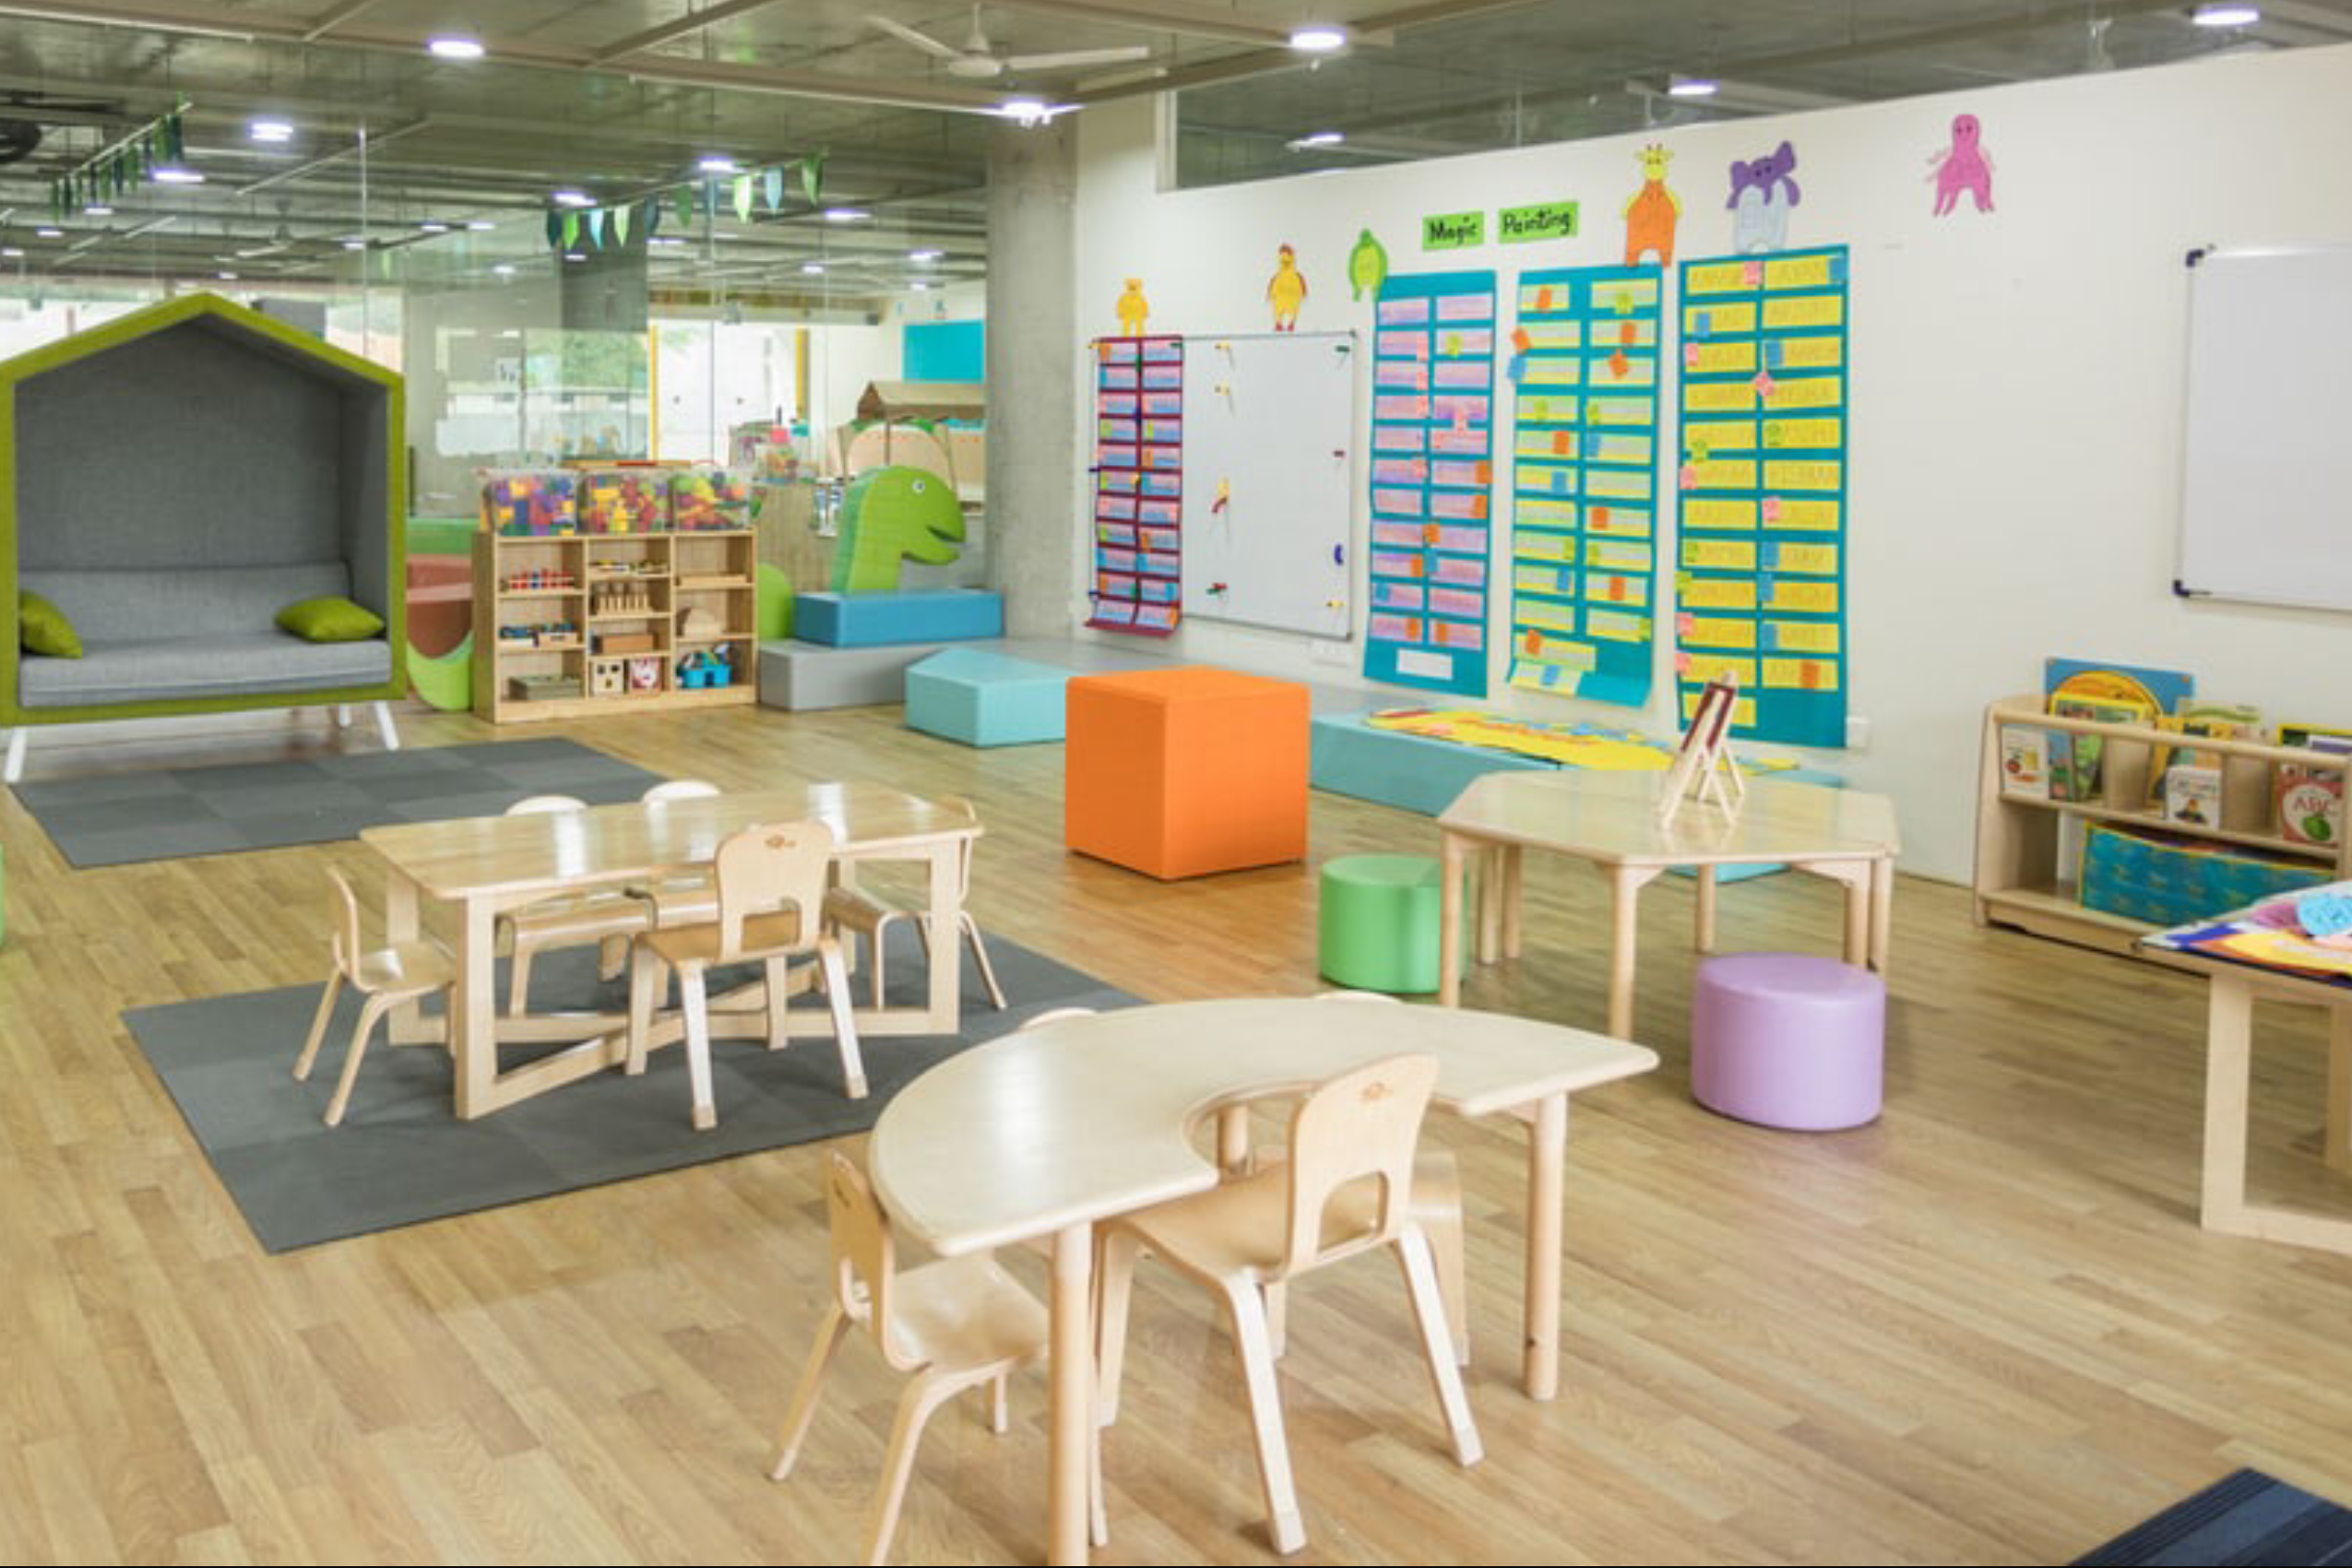 Pre-K classroom with tables, chairs, and learning materials on the wall